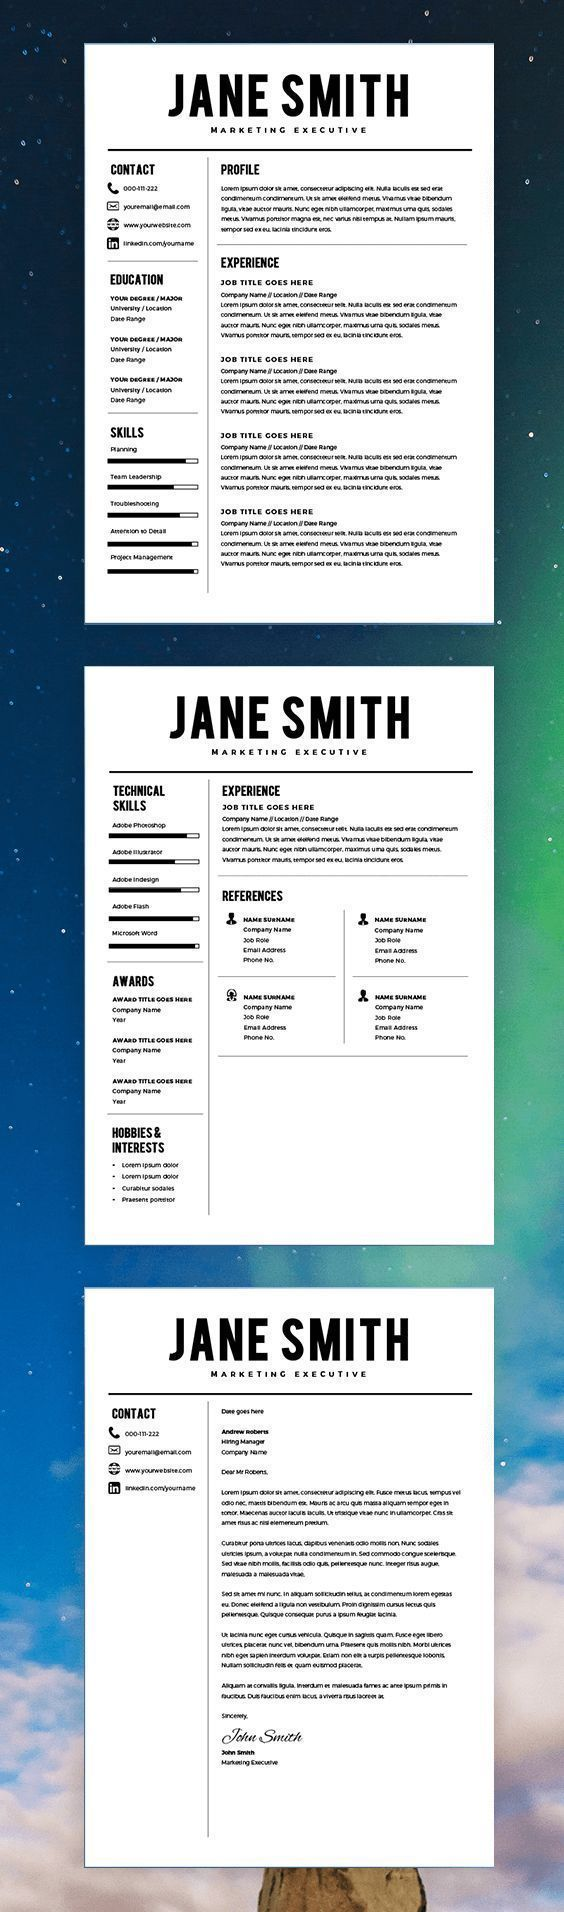 Best resume template cv template free cover letter ms word on best resume template cv template free cover letter ms word on mac yelopaper Gallery